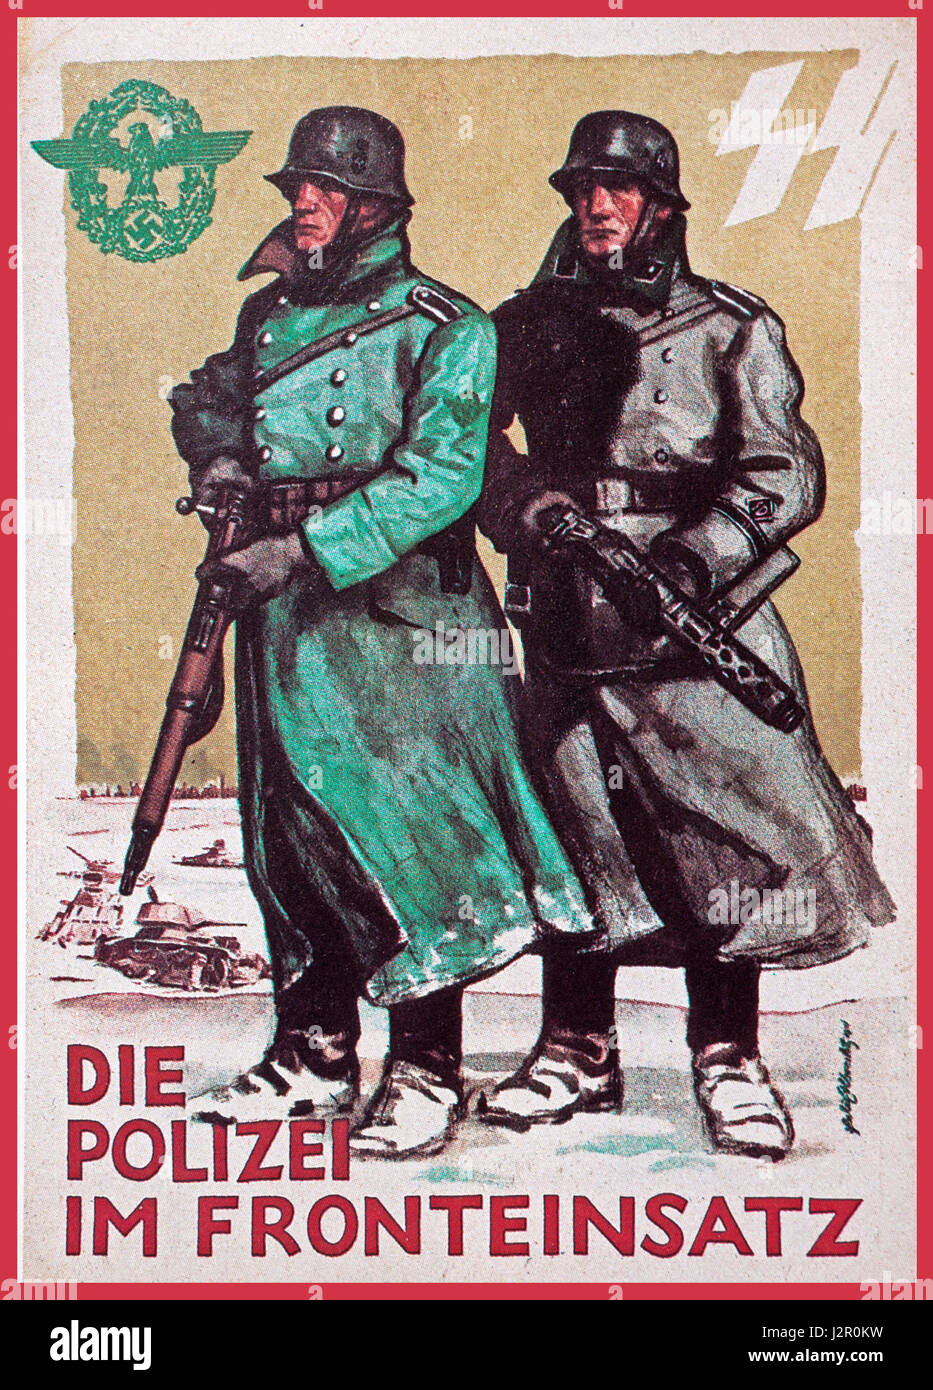 World War 2 Official Nazi Germany Propaganda postcard captioned 'The Police in Frontline Duty' on the eastern - Stock Image